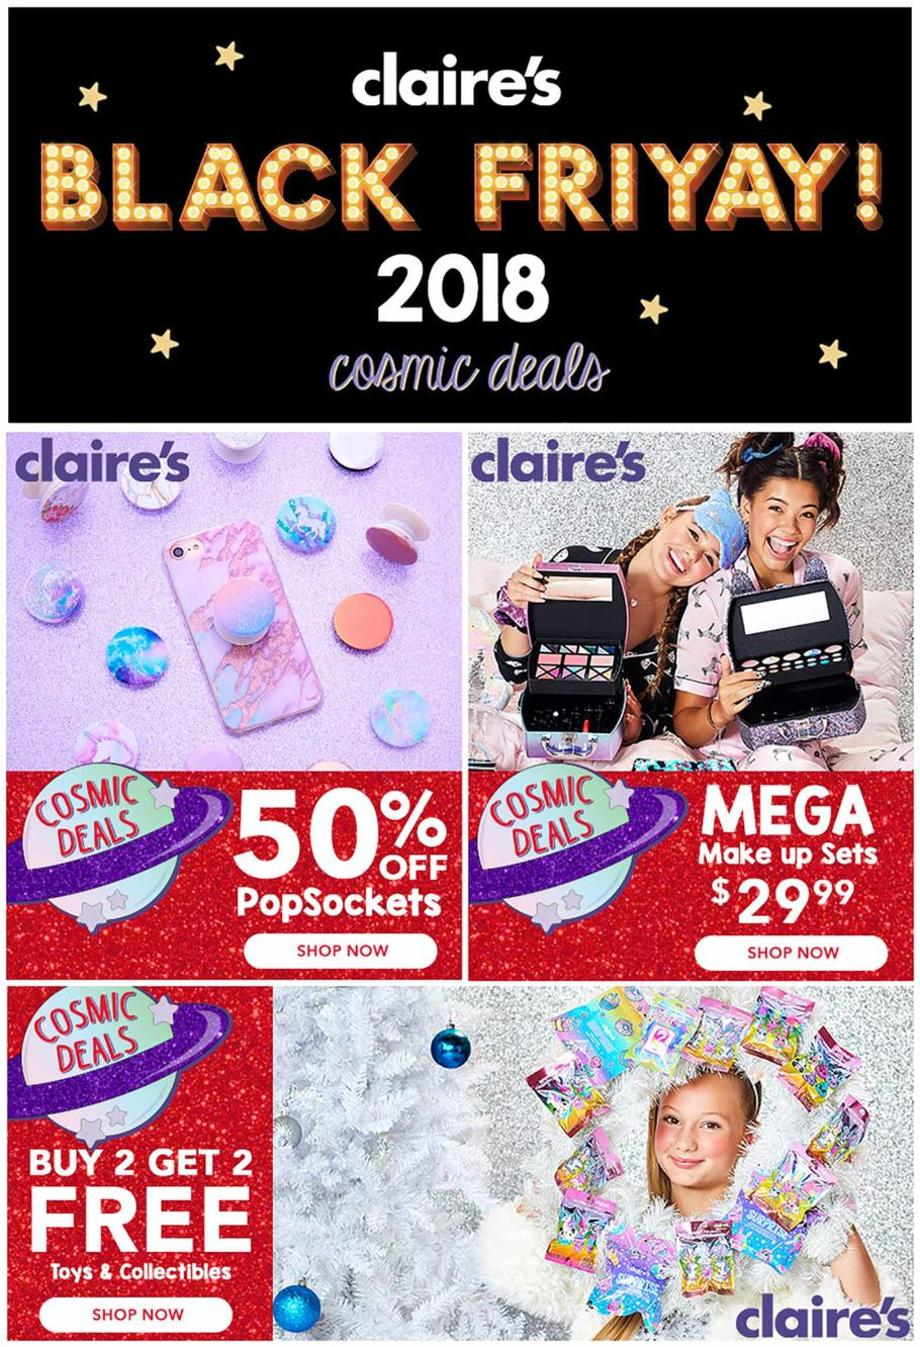 image relating to Claires Printable Coupons referred to as Claires Black Friday Advertisements Specials Doorbusters Profits 2018